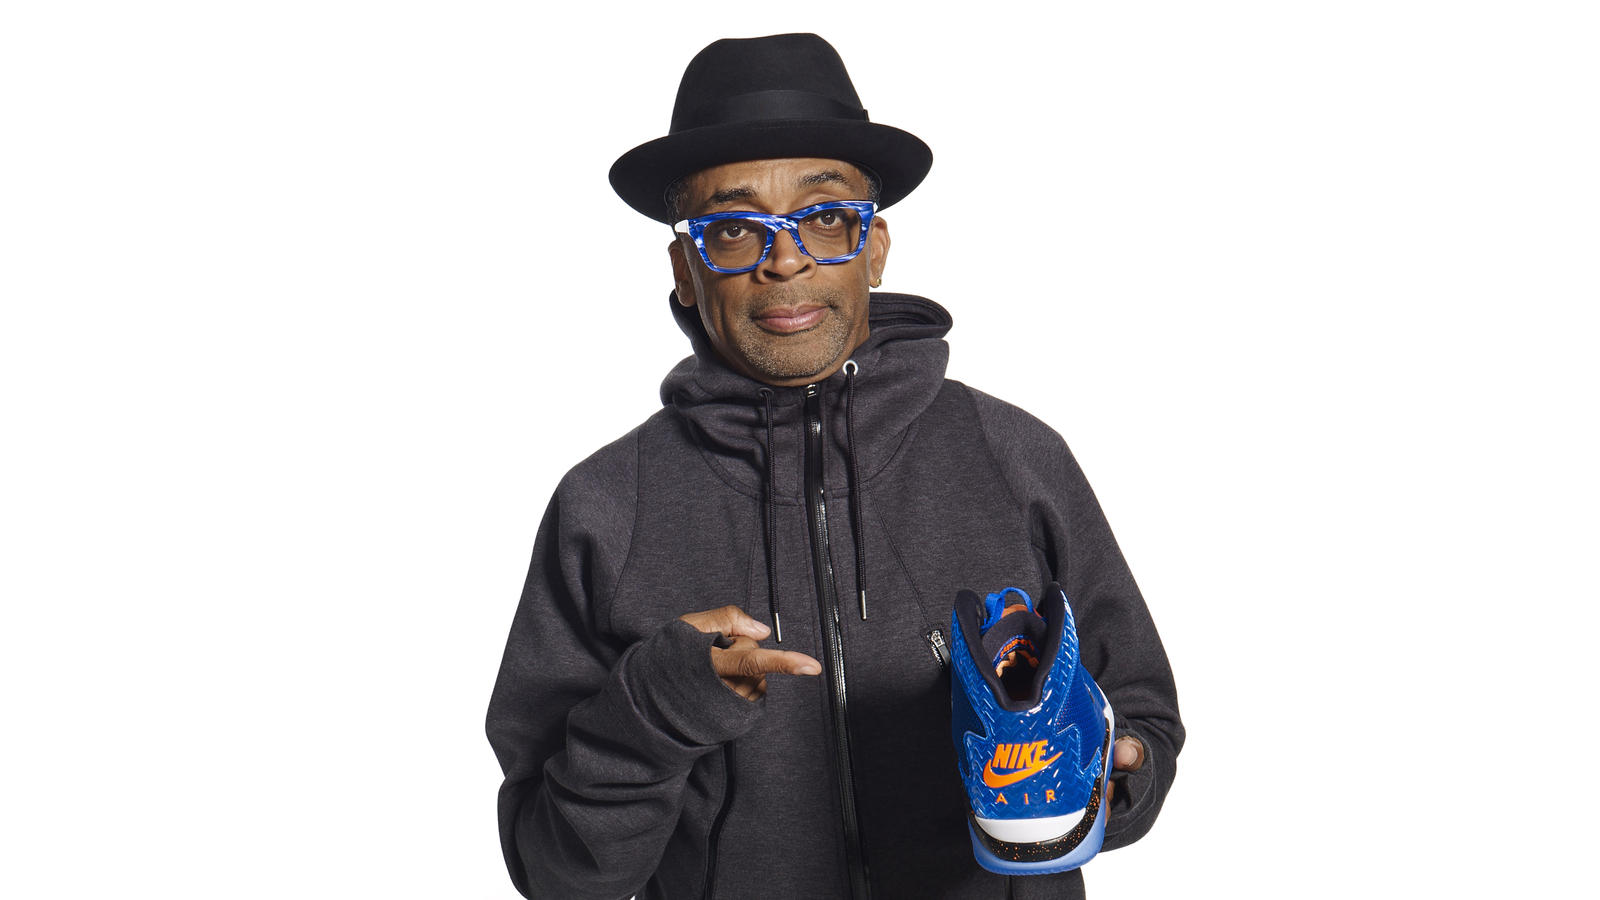 Spike Lee and a HO '15 Spike Forty colorway